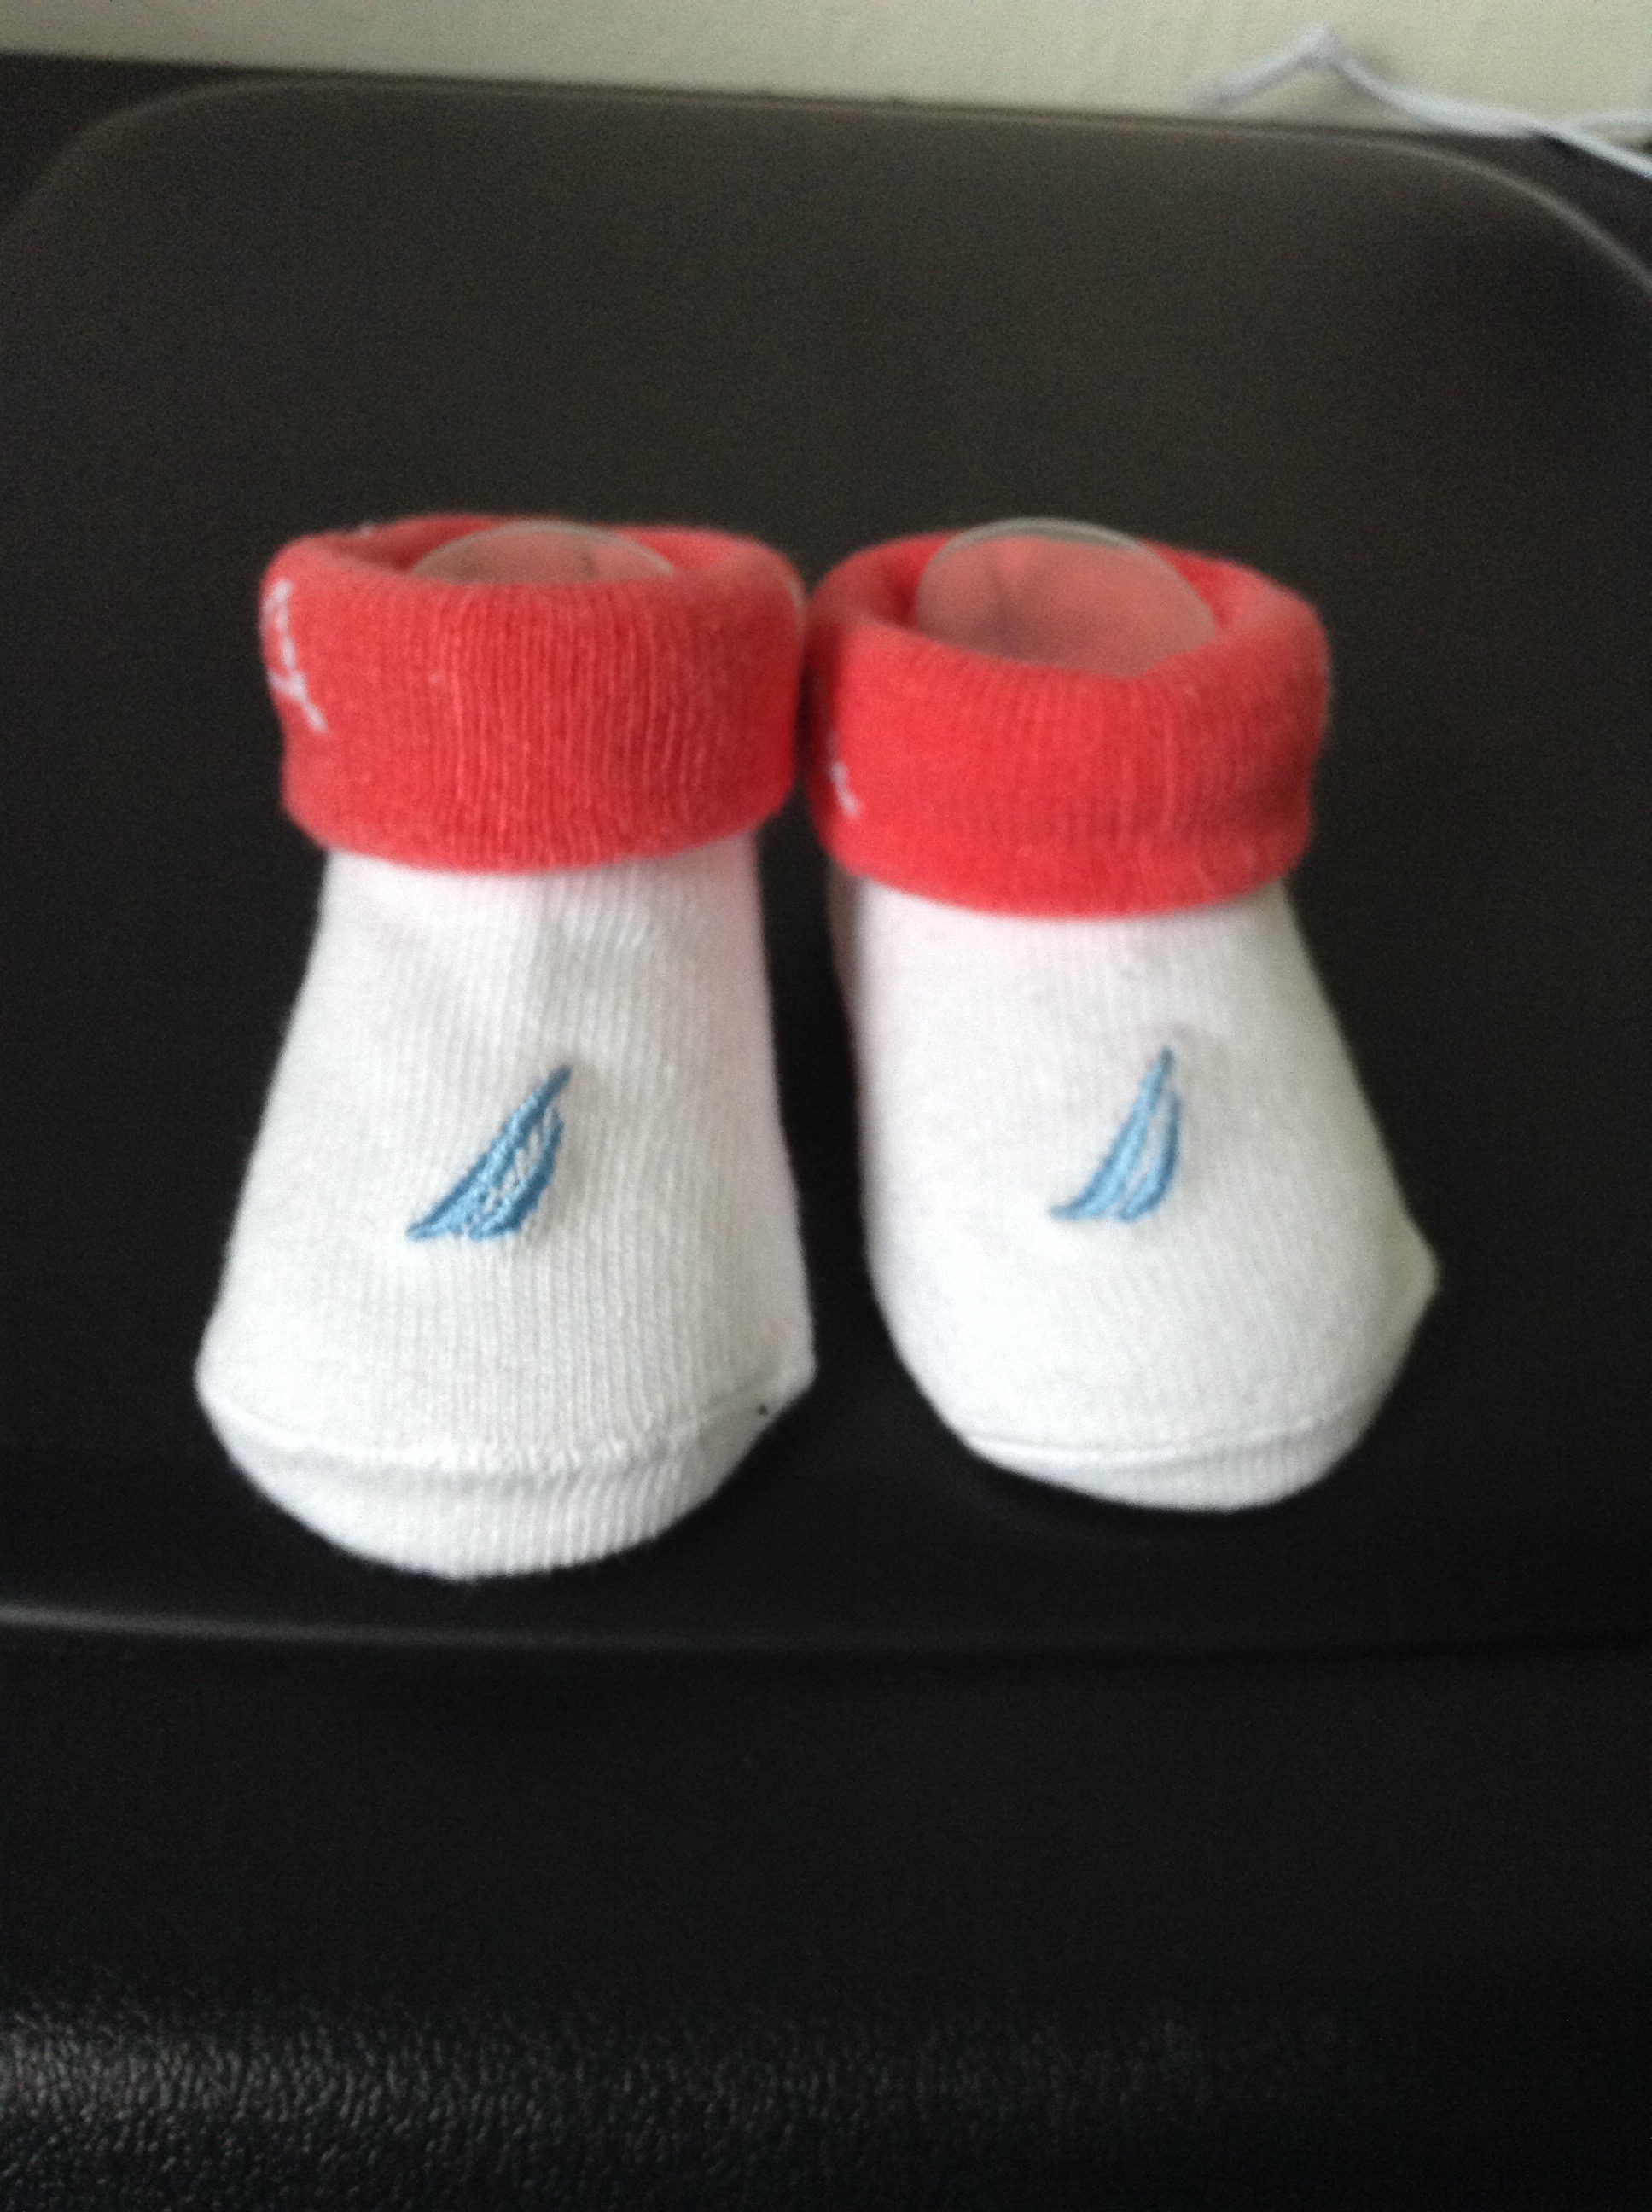 picture of white baby socks with red trimming